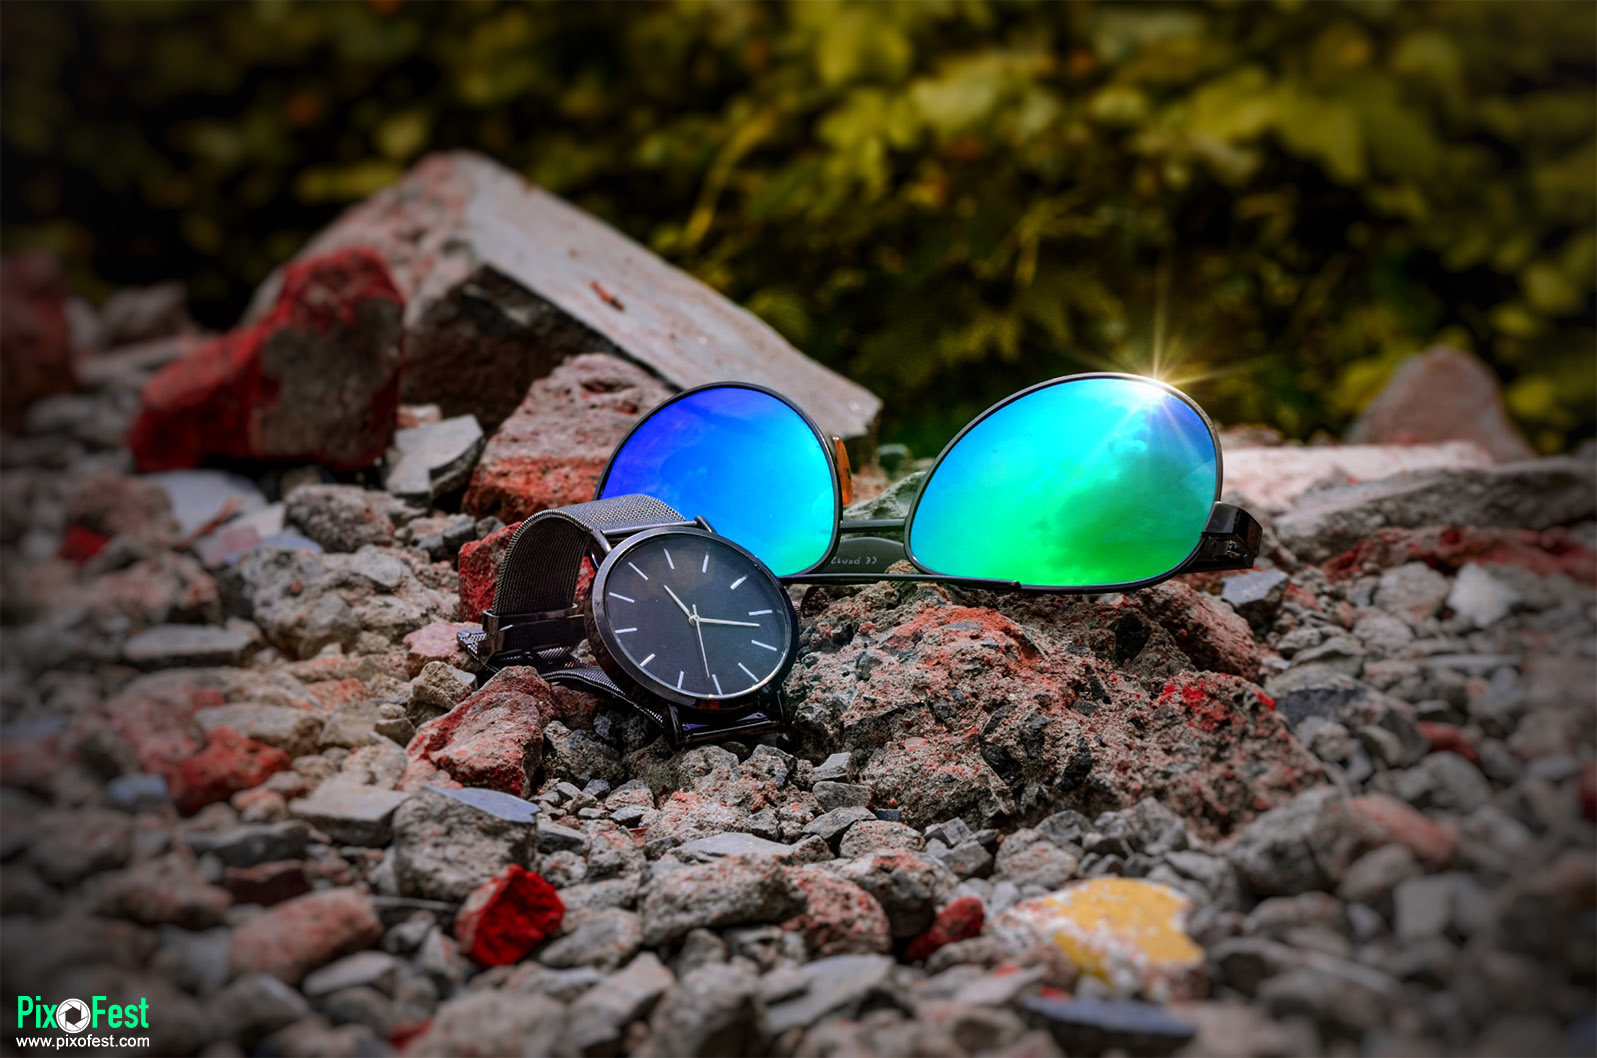 watch,sunglass,productshoot,product,bluesunglass,style,blackwatch,outdoorshoot,outdoorproductshoot,pixofest